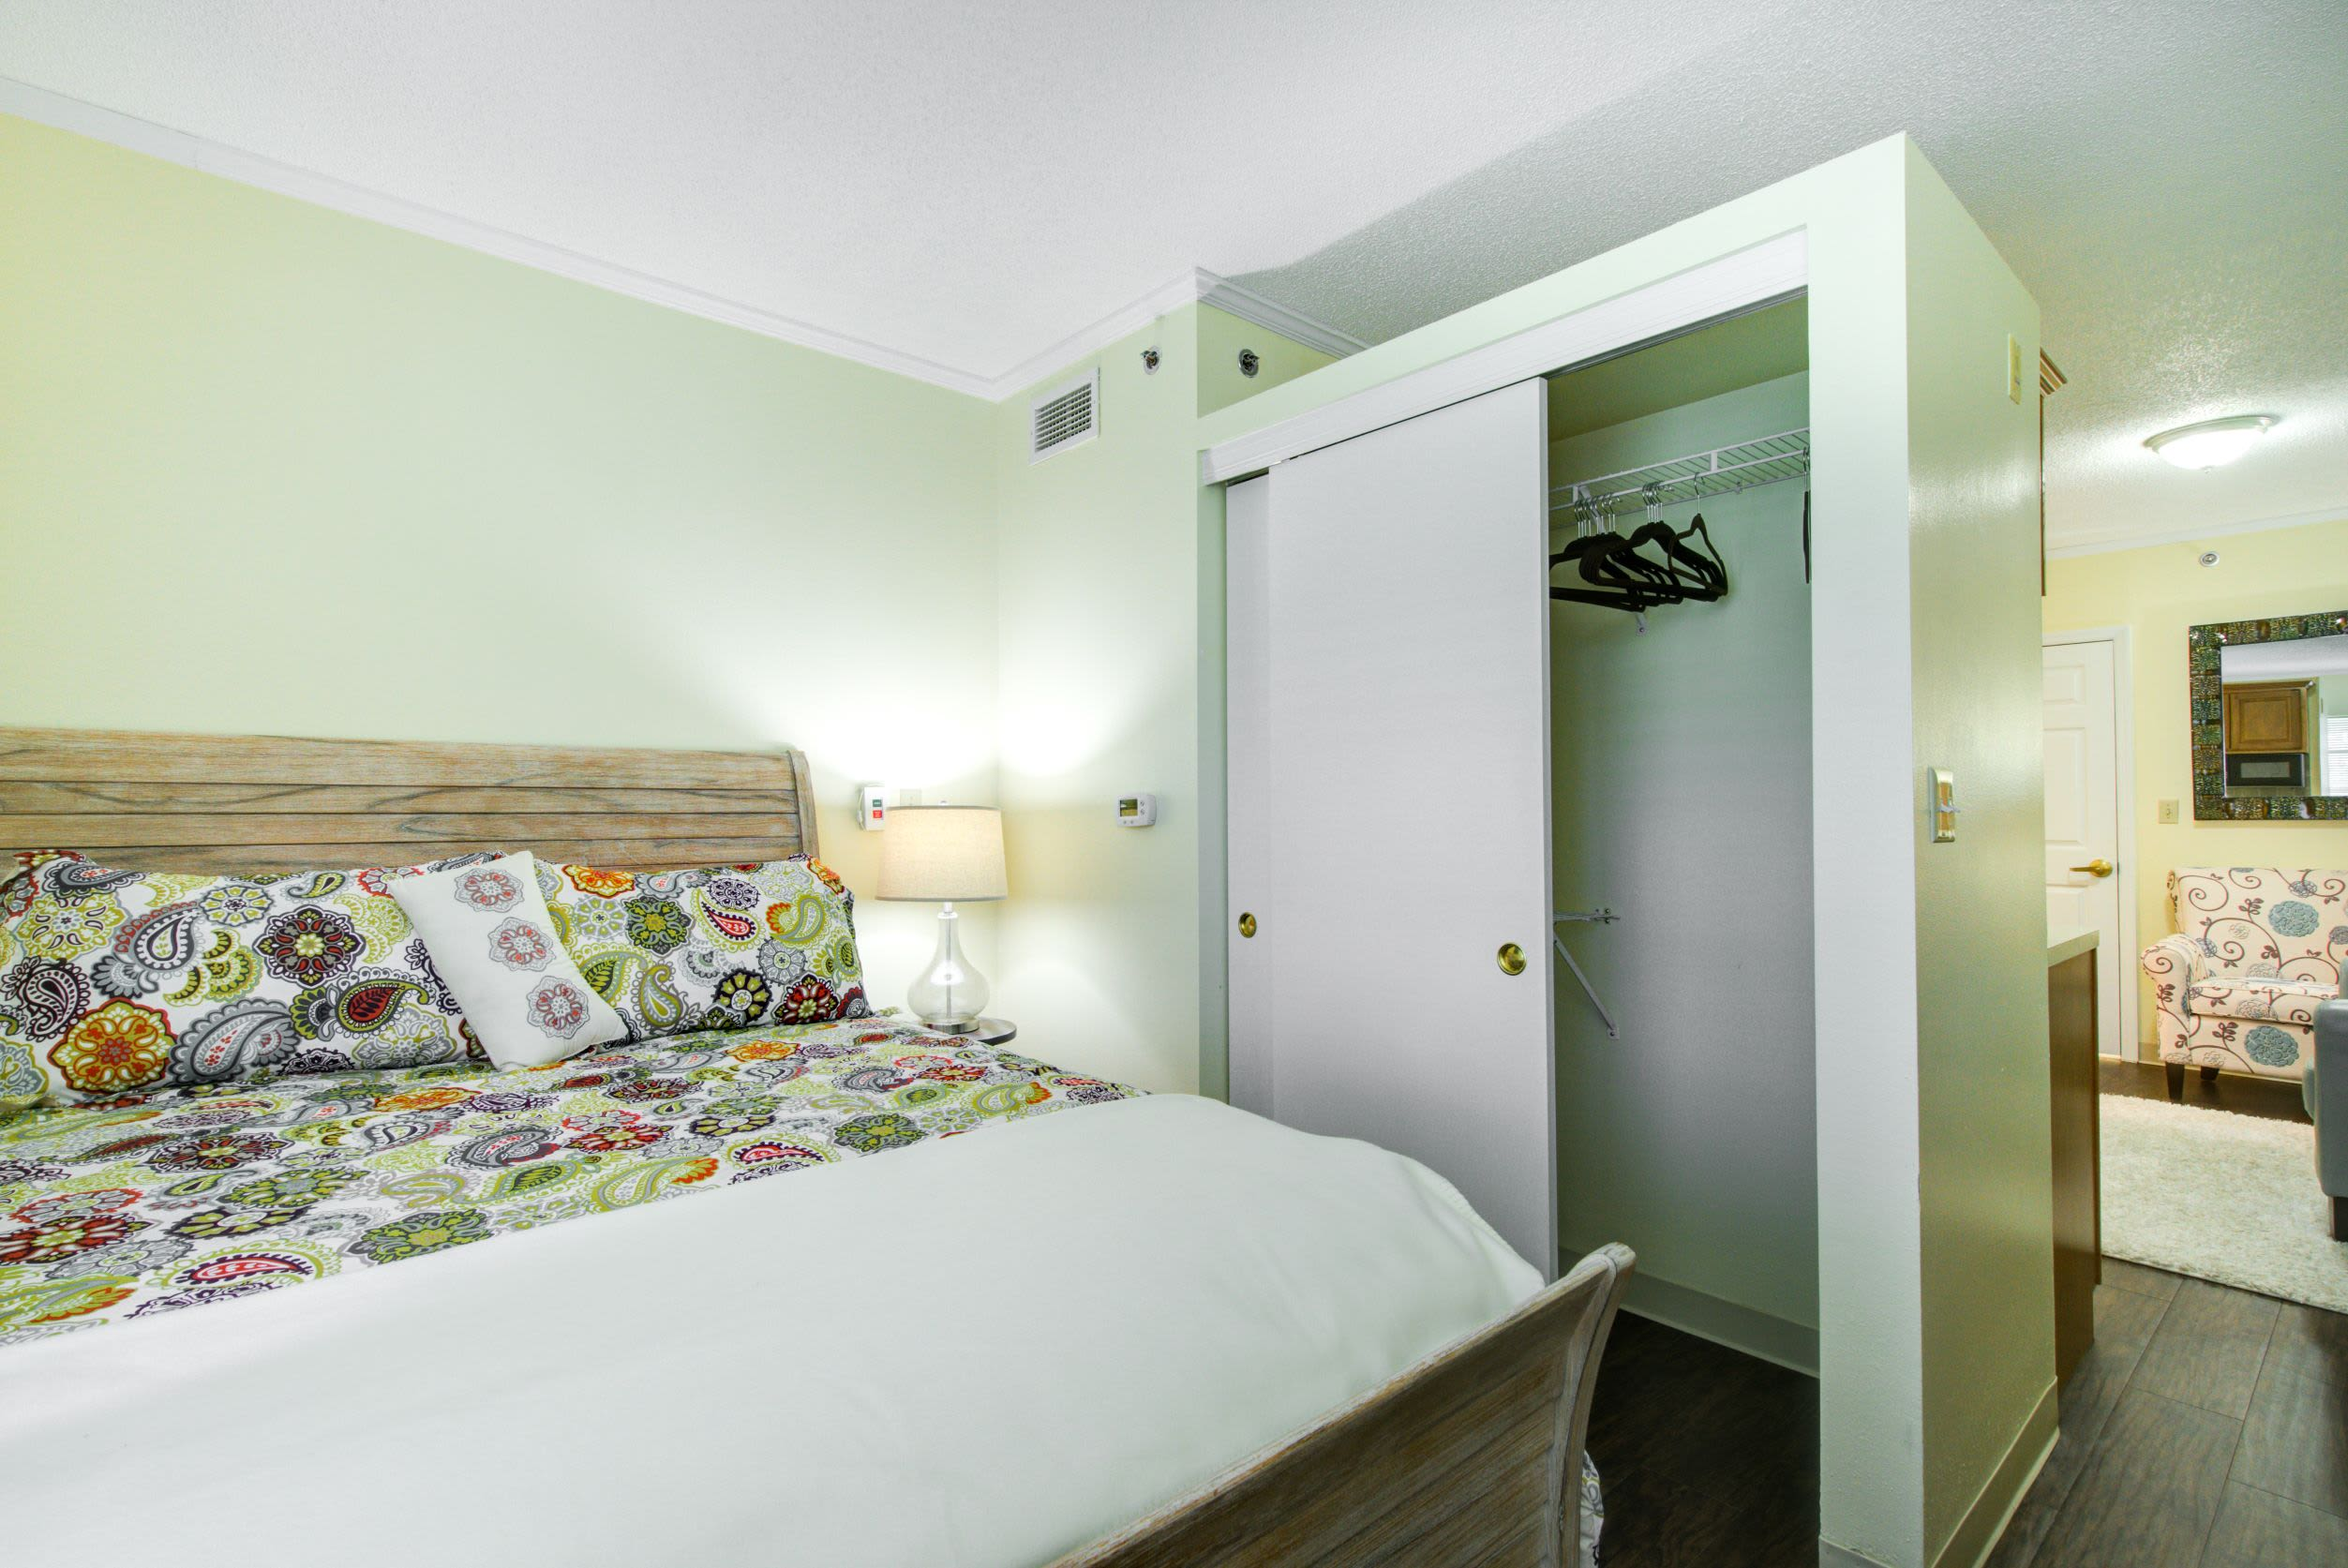 Bedroom at Truewood by Merrill, Charlotte Center in Port Charlotte, Florida